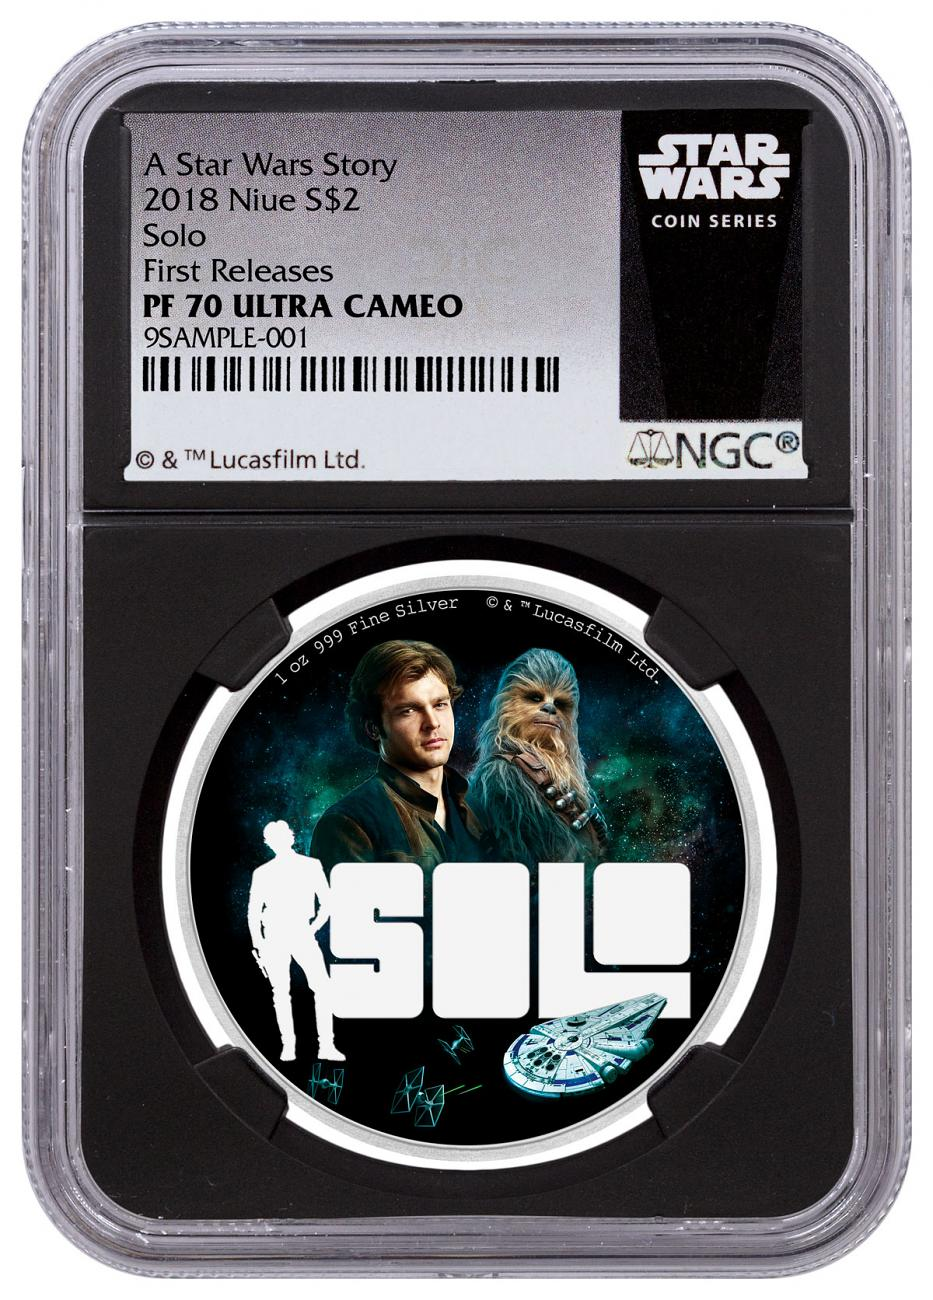 2018 Niue Han Solo: A Star Wars Story 1 oz Silver Colorized Proof $2 Coin NGC PF70 UC FR Black Core Holder Exclusive Star Wars Label